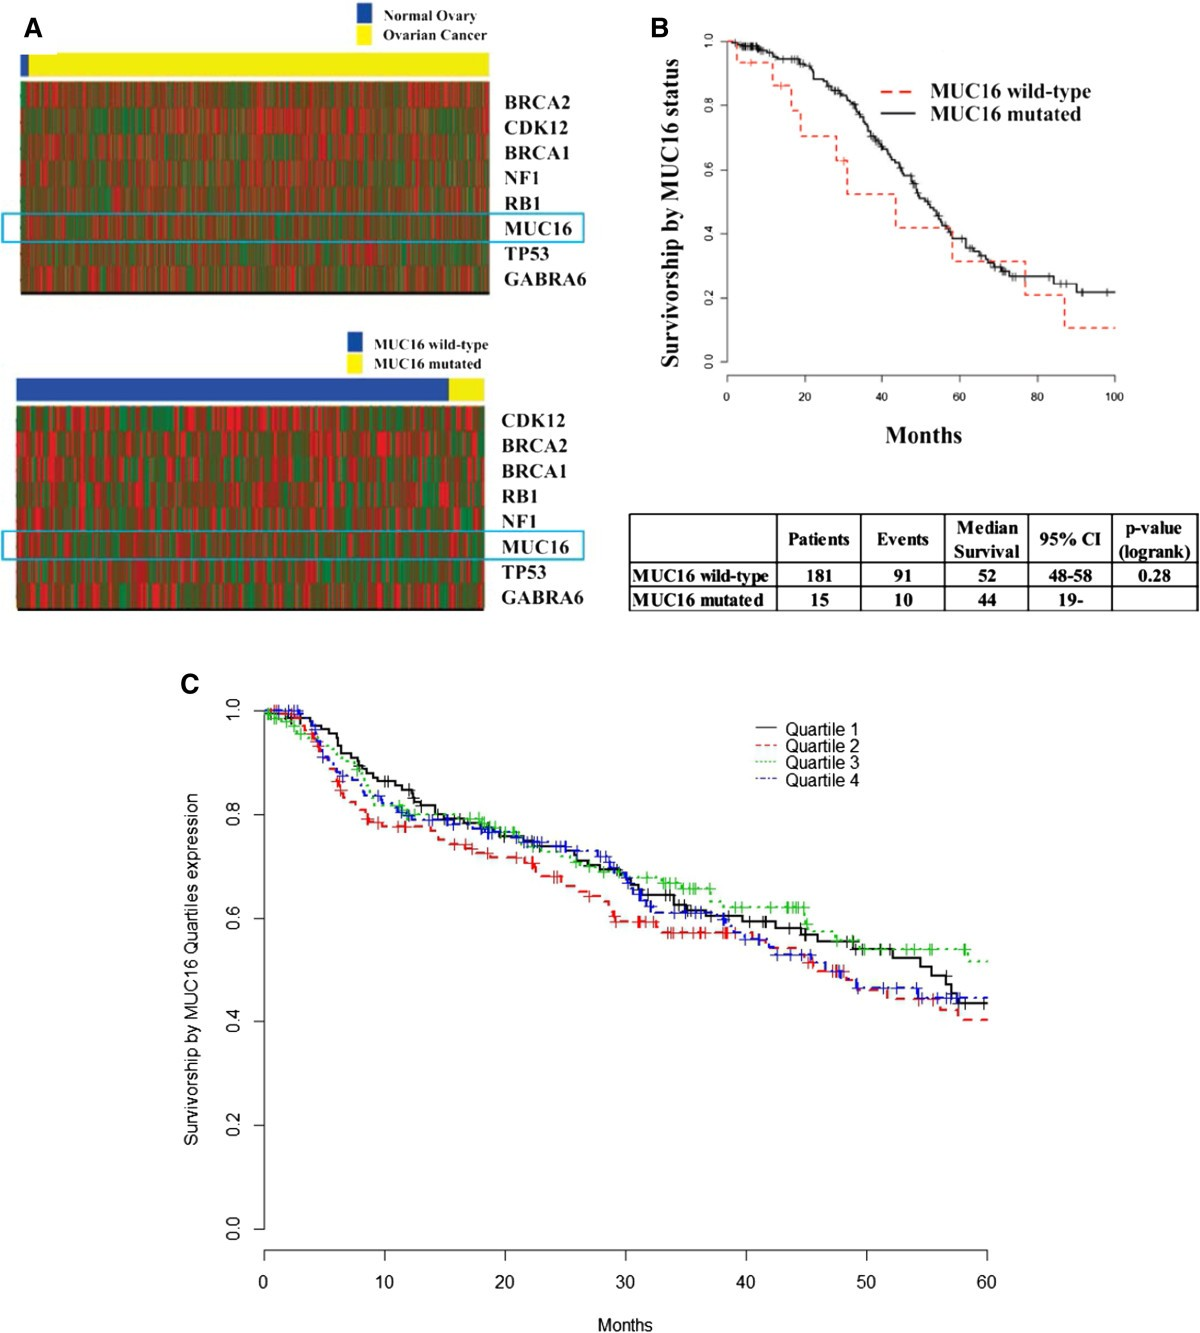 Muc16 Ca125 Tumor Biomarker To Cancer Therapy A Work In Progress Molecular Cancer Full Text